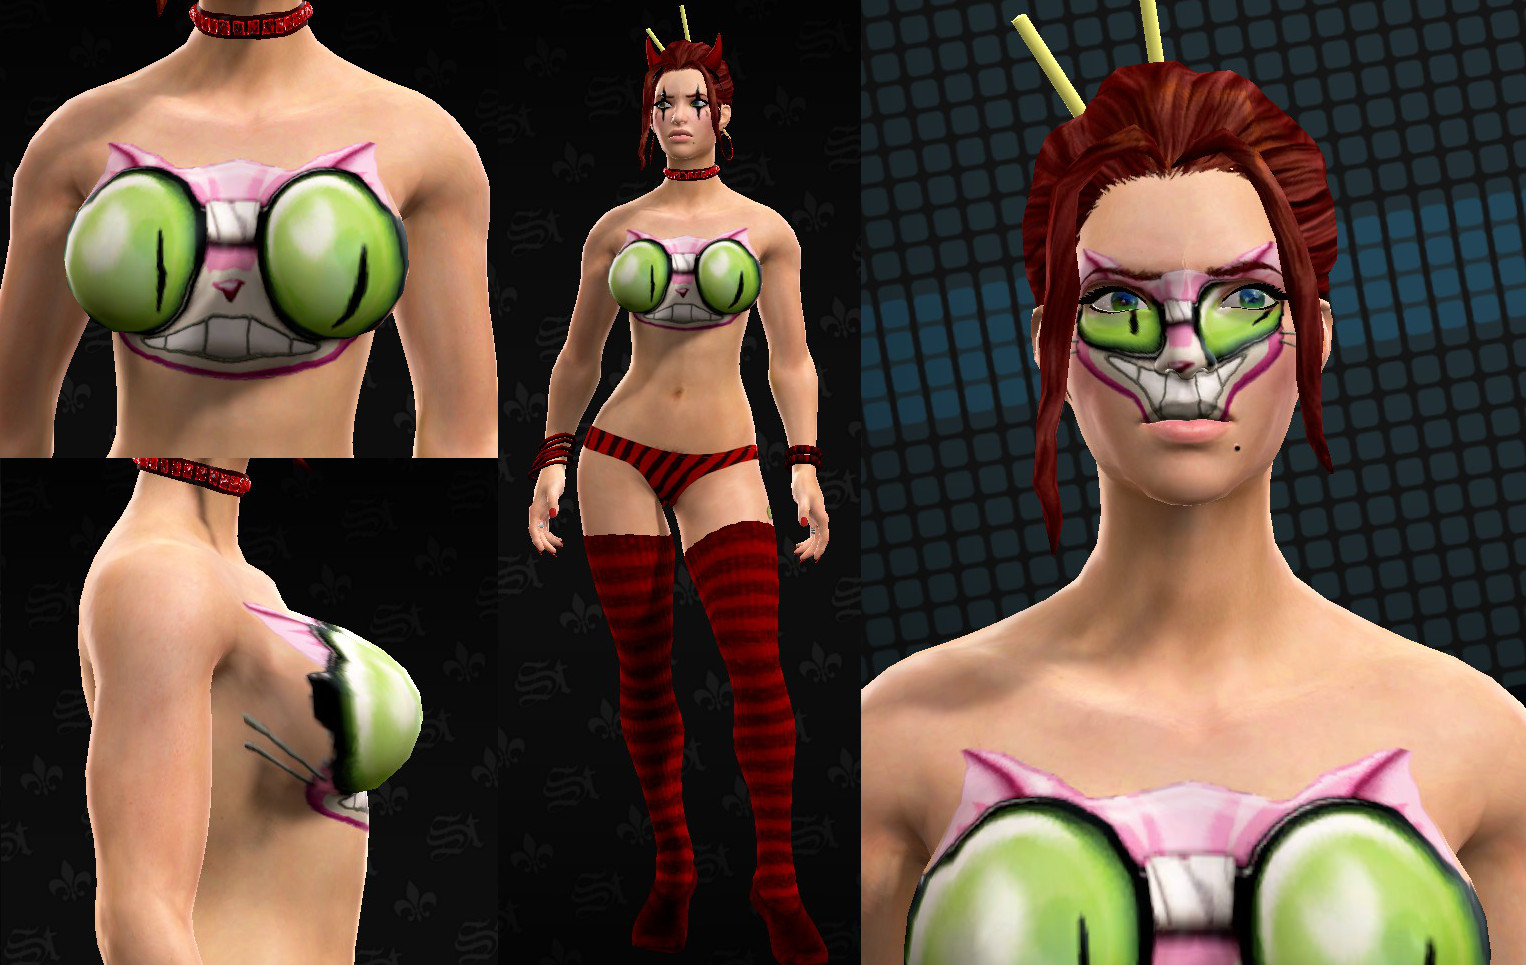 Saint row 4 nudepatch hentai toons